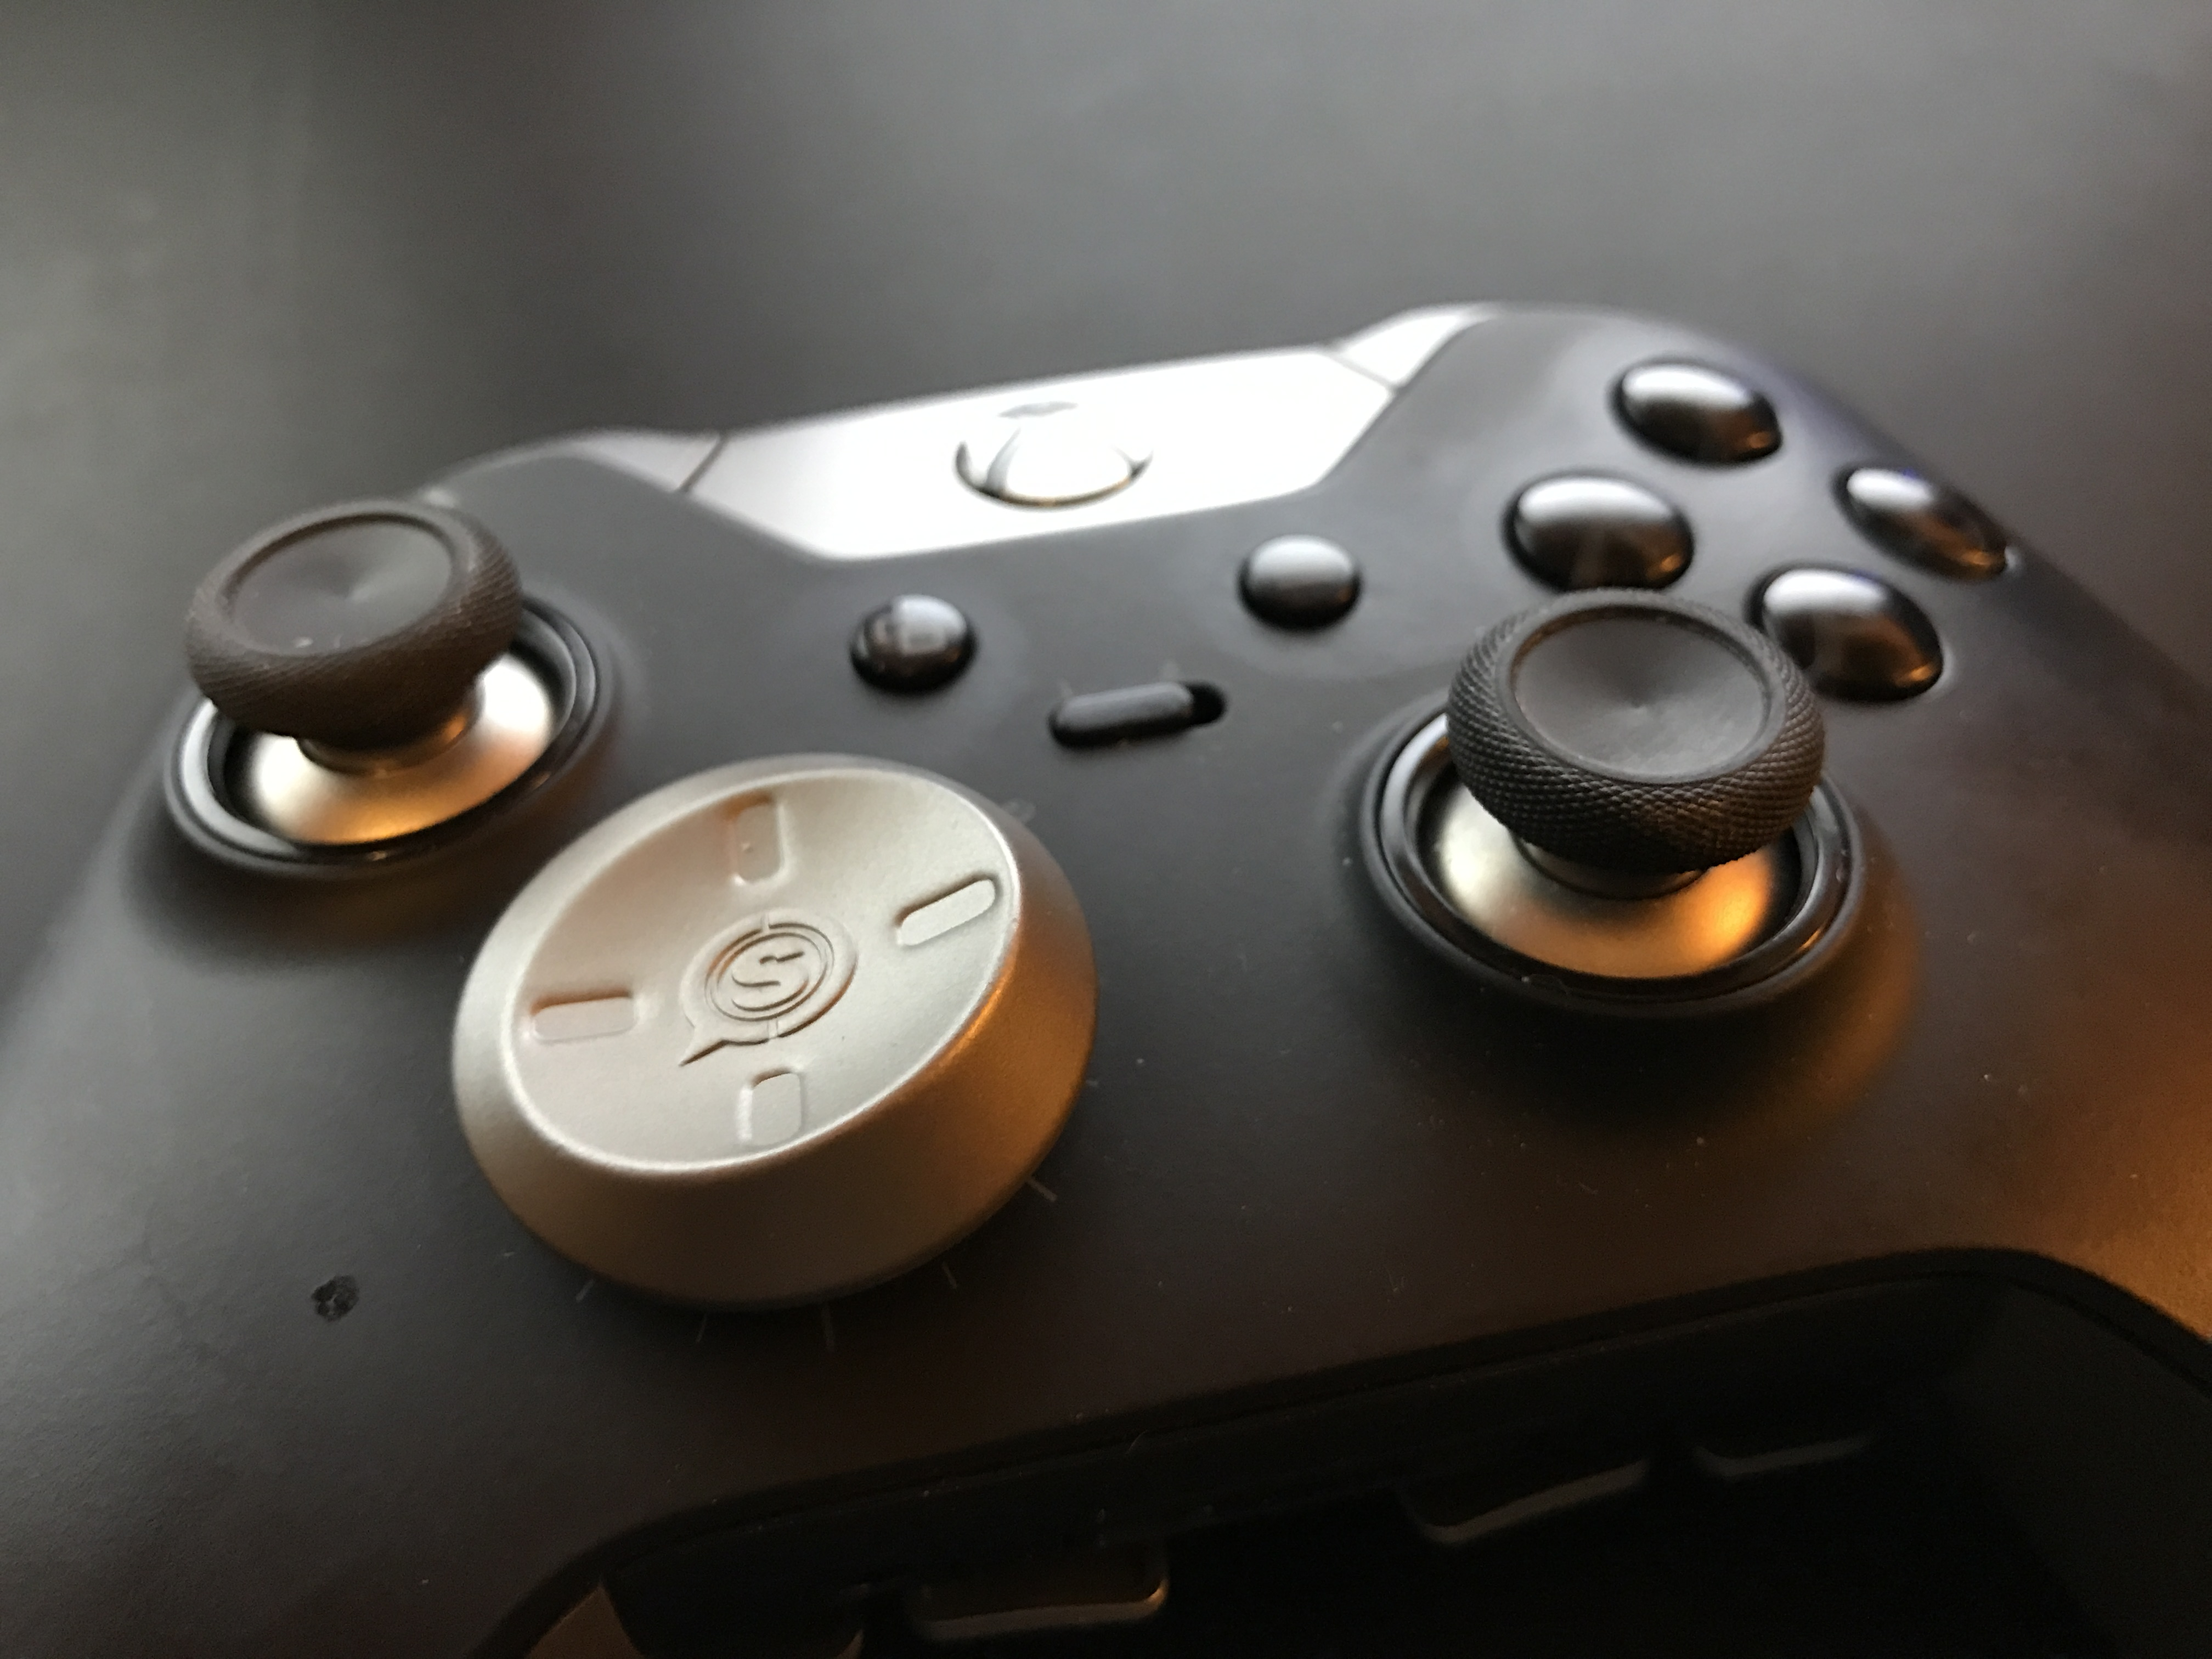 A closer look at Scuf's Xbox One Elite controller mods